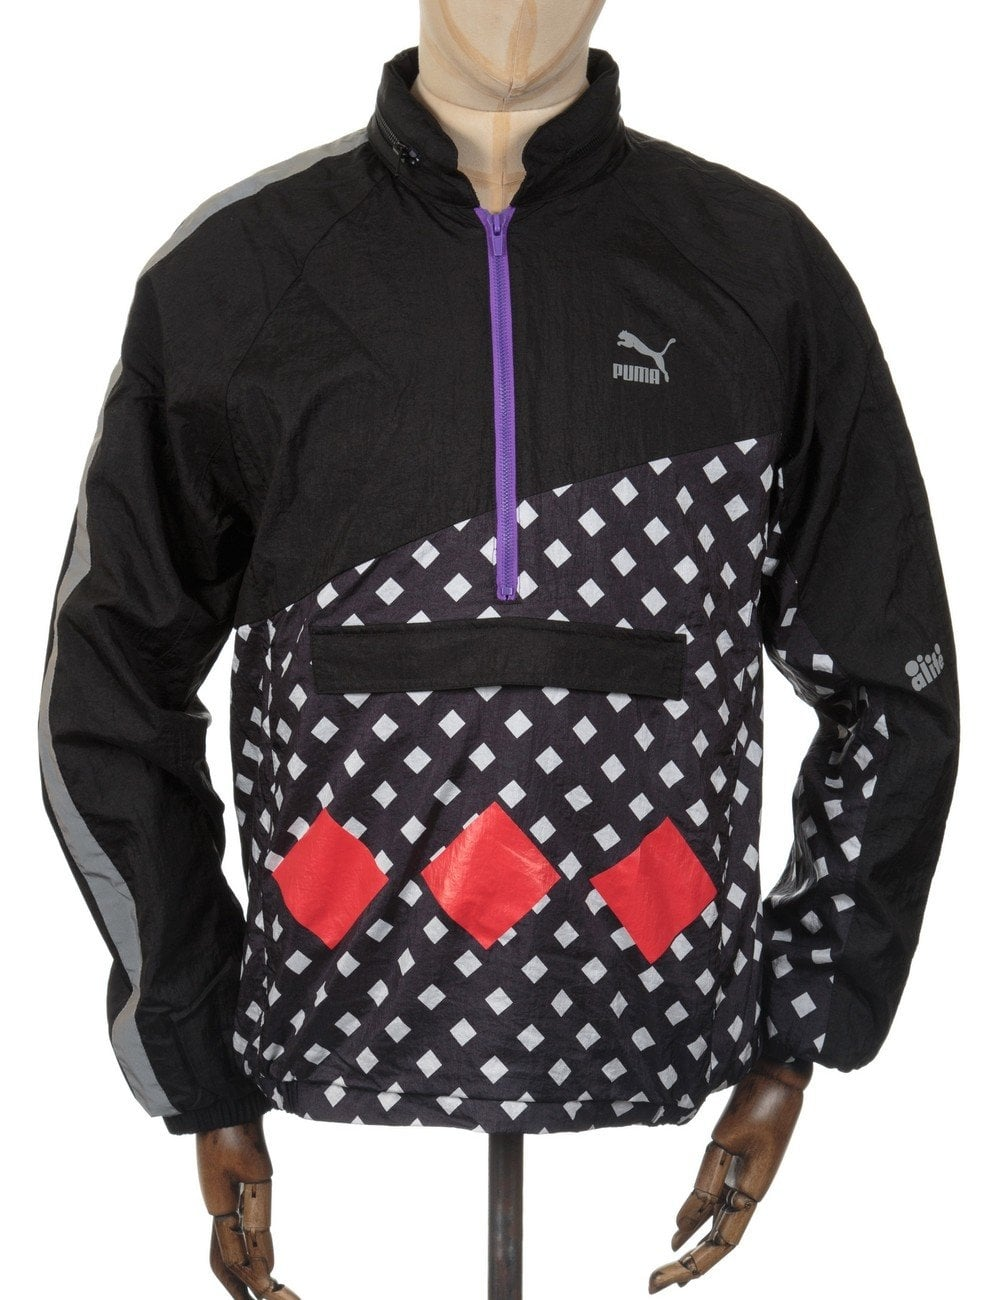 Puma x Alife Savanah Jacket - Black AOP Print - Clothing from Fat ... dc93e5f4ee79